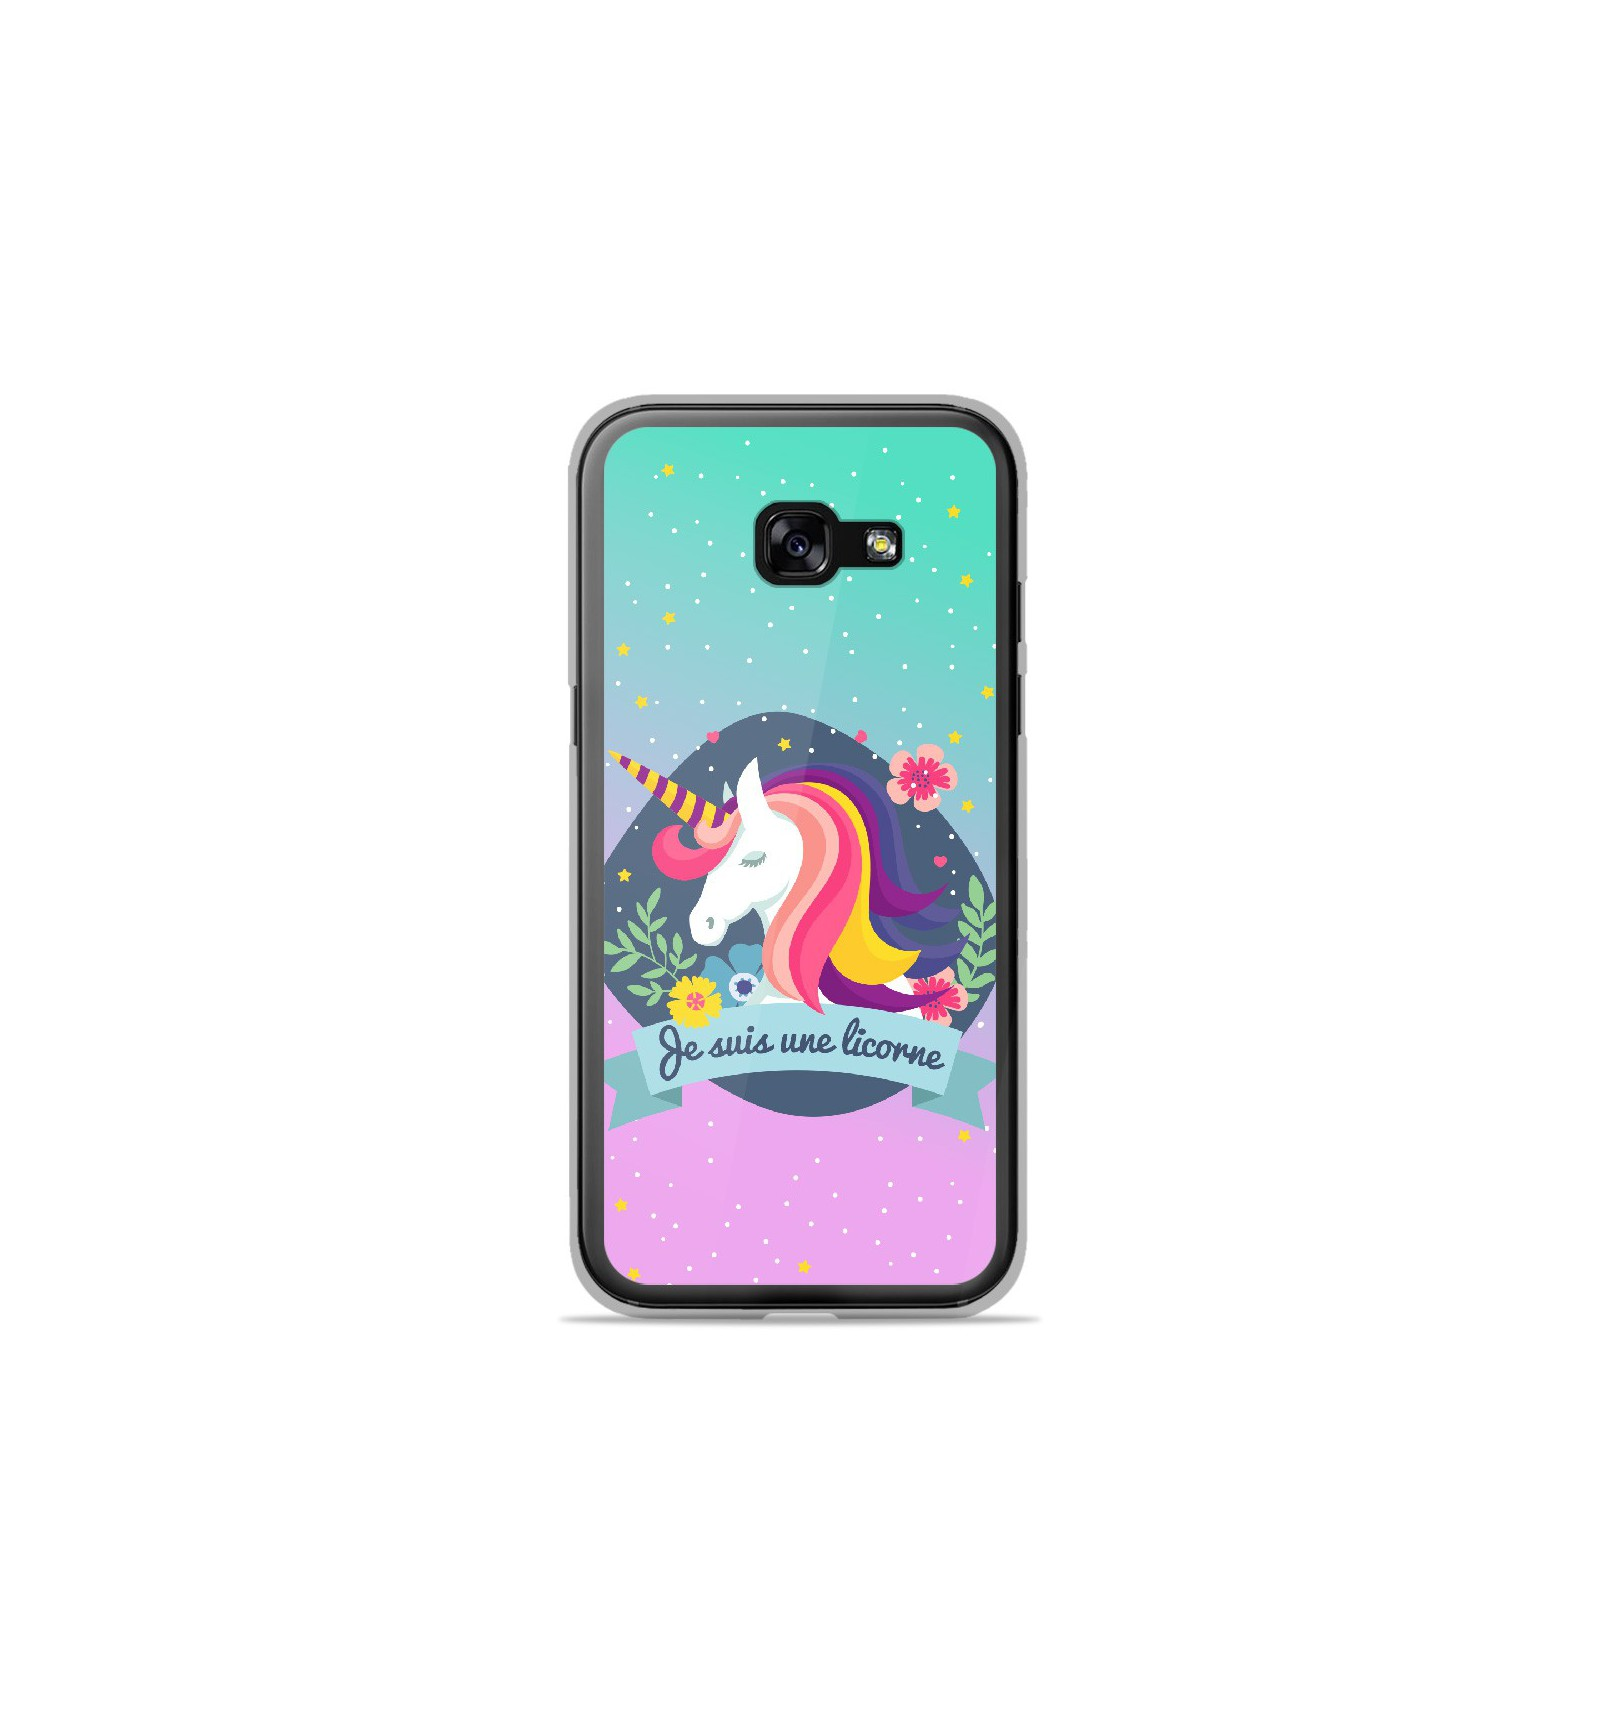 coque en silicone samsung galaxy a3 2017 je suis une licorne. Black Bedroom Furniture Sets. Home Design Ideas